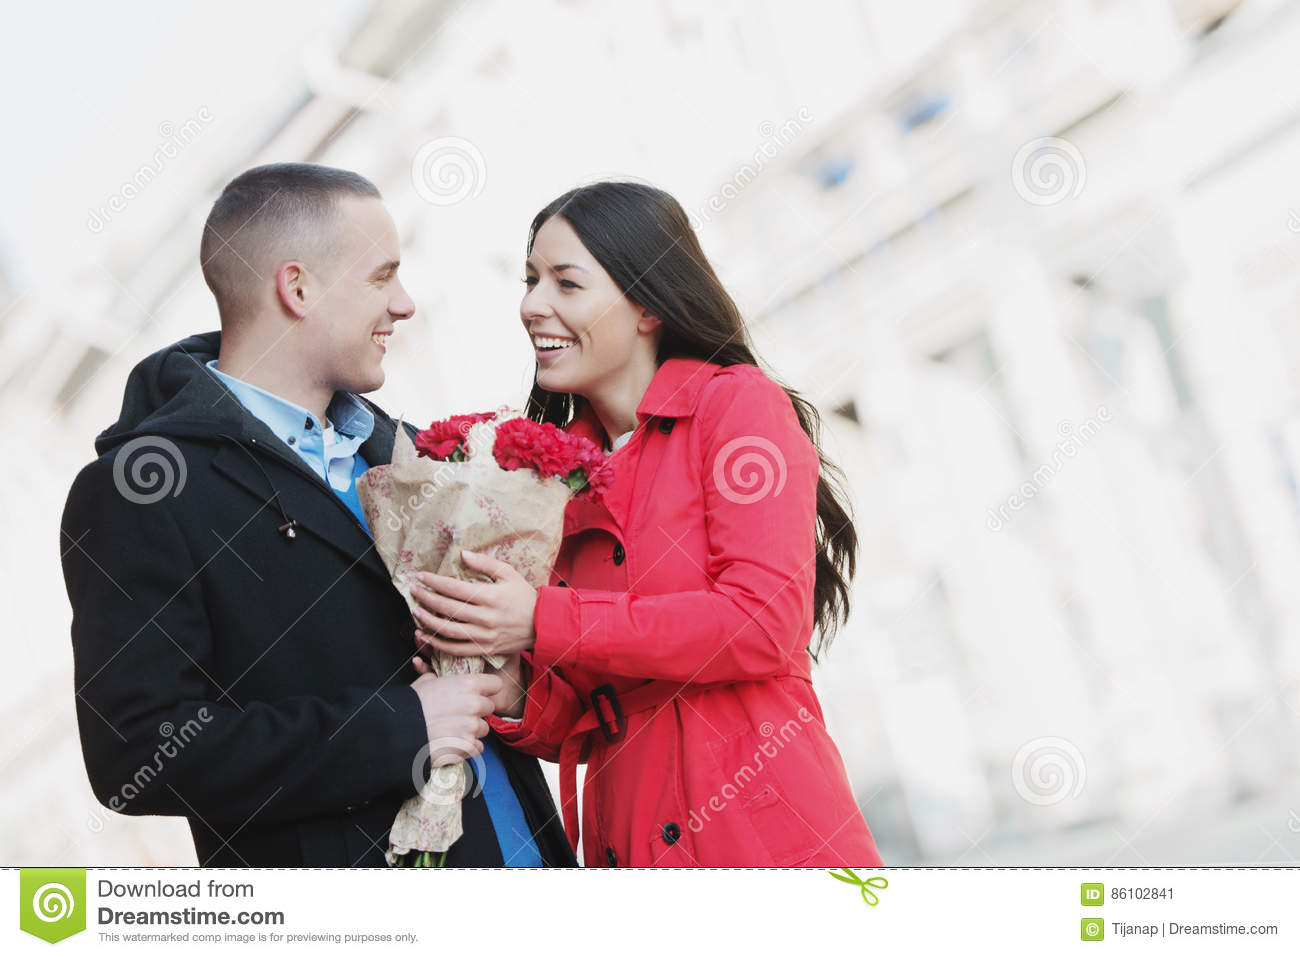 dating an outdoorsy guy Happy woman enjoying date with man outdoor - stock photo(no37525945) find images exactly you are looking for from more than 32,600,000 of royalty-free stock photos, illustrations, and vectors.